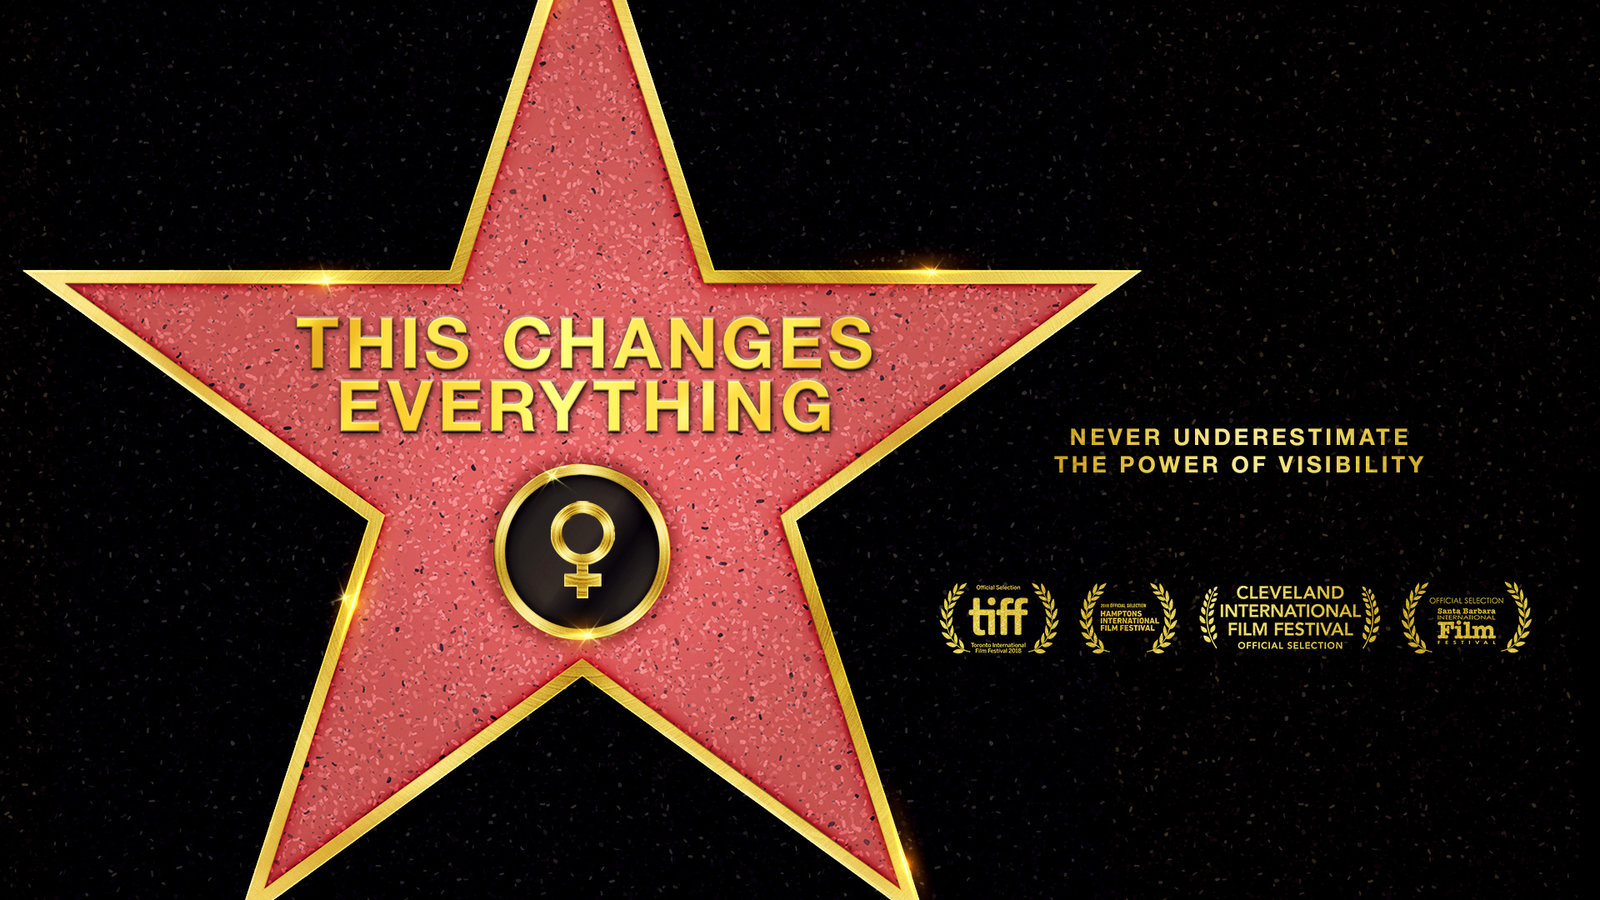 This Changes Everything - An Analysis of Gender Disparity in Hollywood